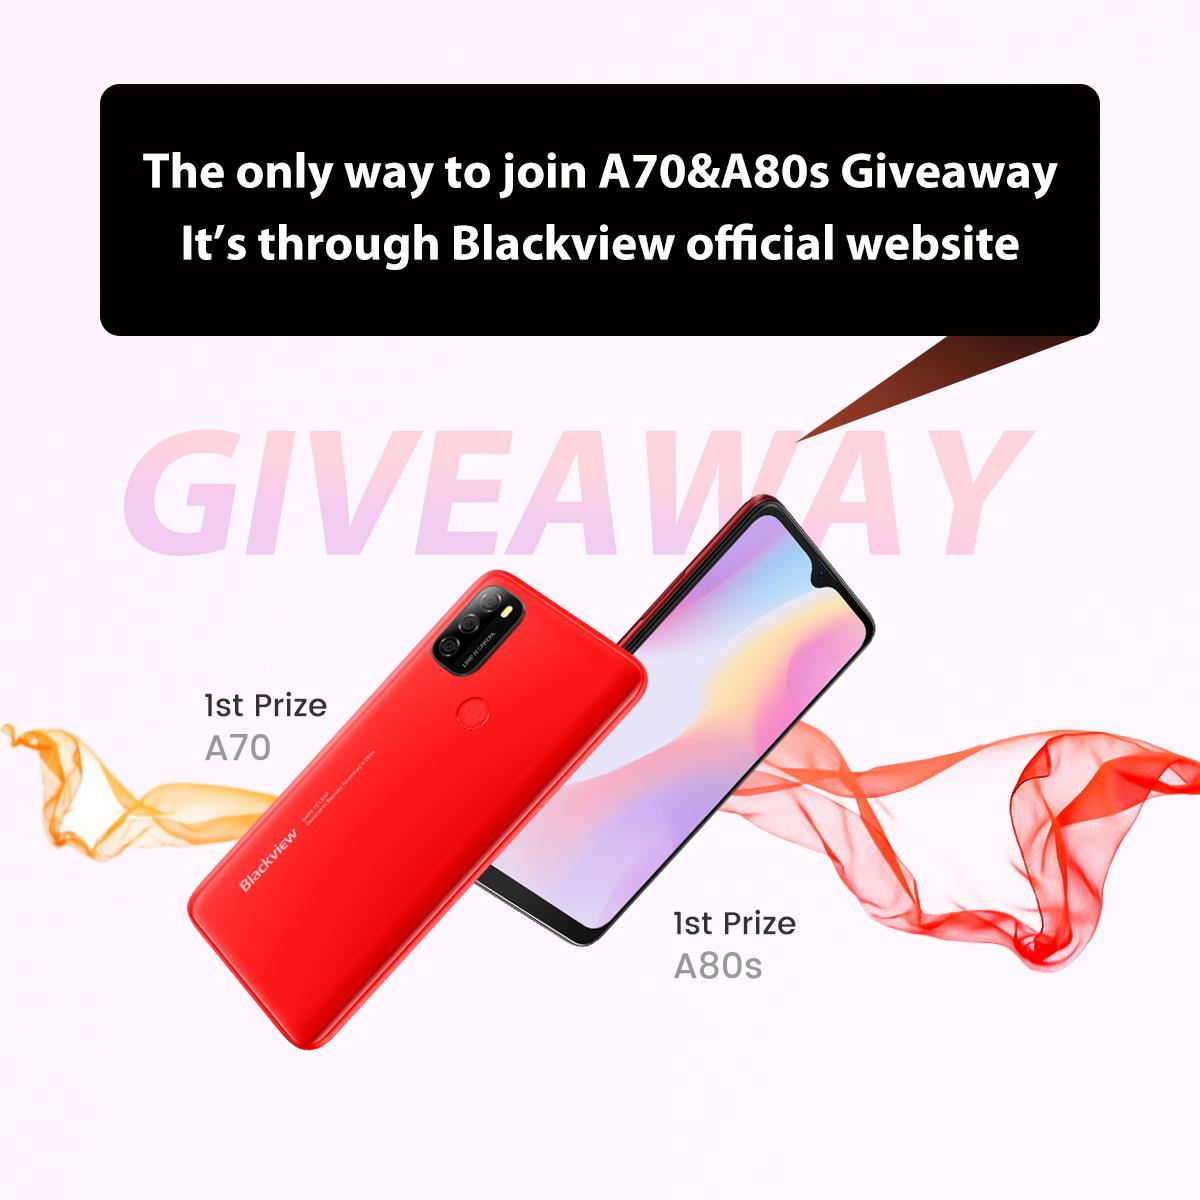 #Blackview community, a few fans reported a fake #A70 #Giveaway website to us.